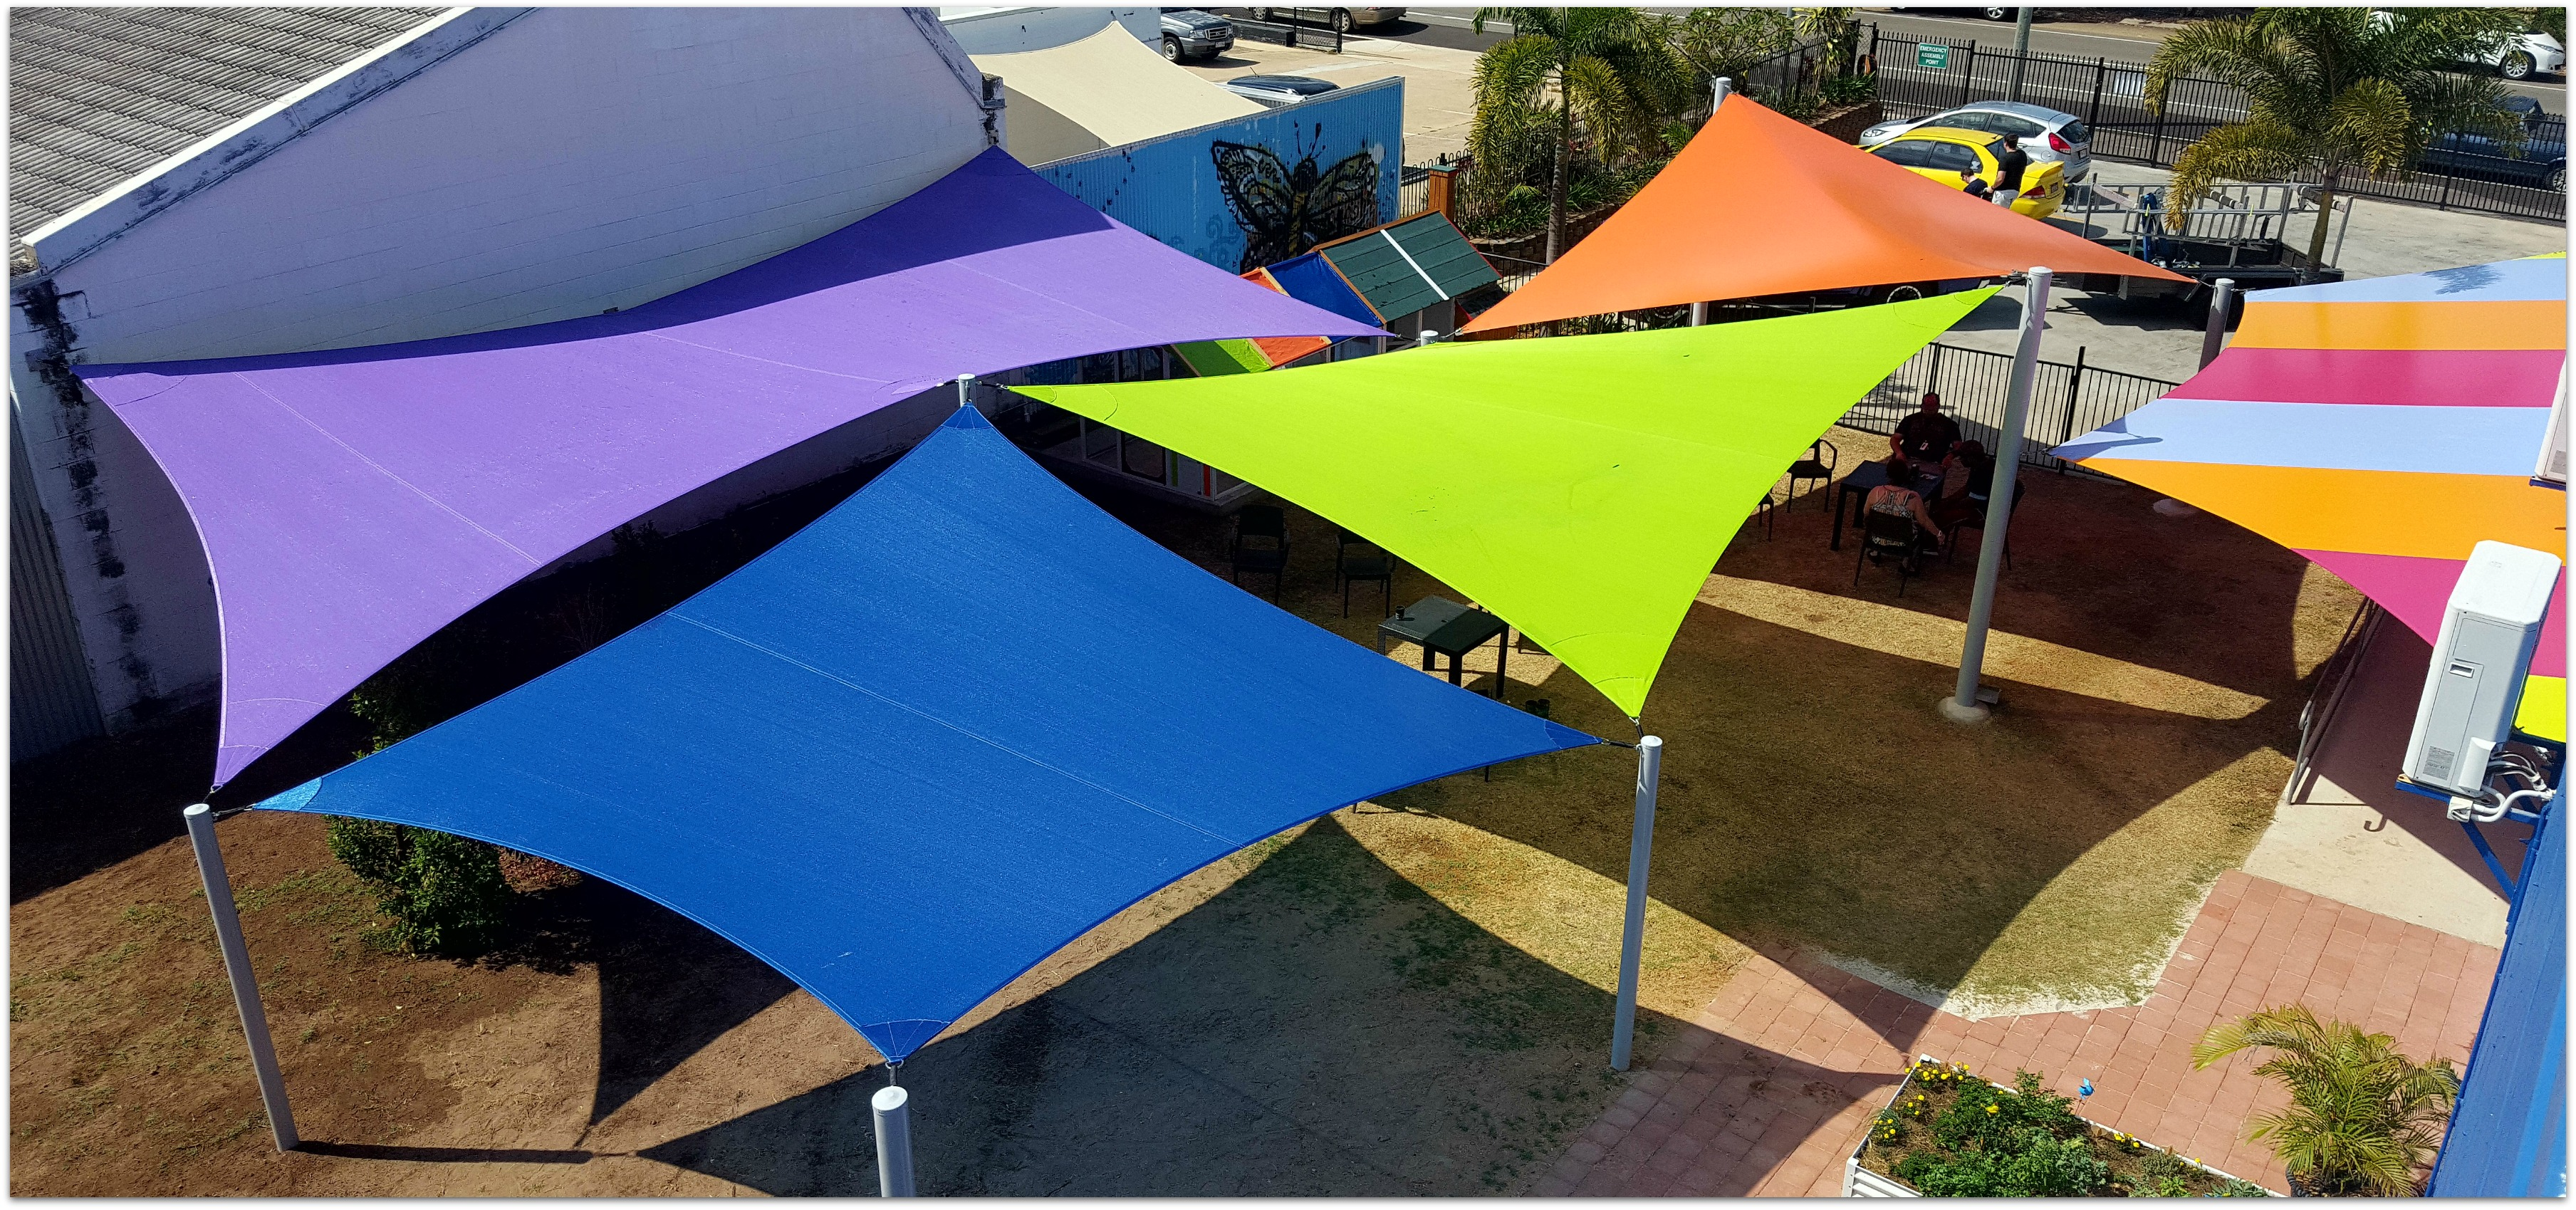 Maximum Exposure with Multi-Coloured Shade Sails.